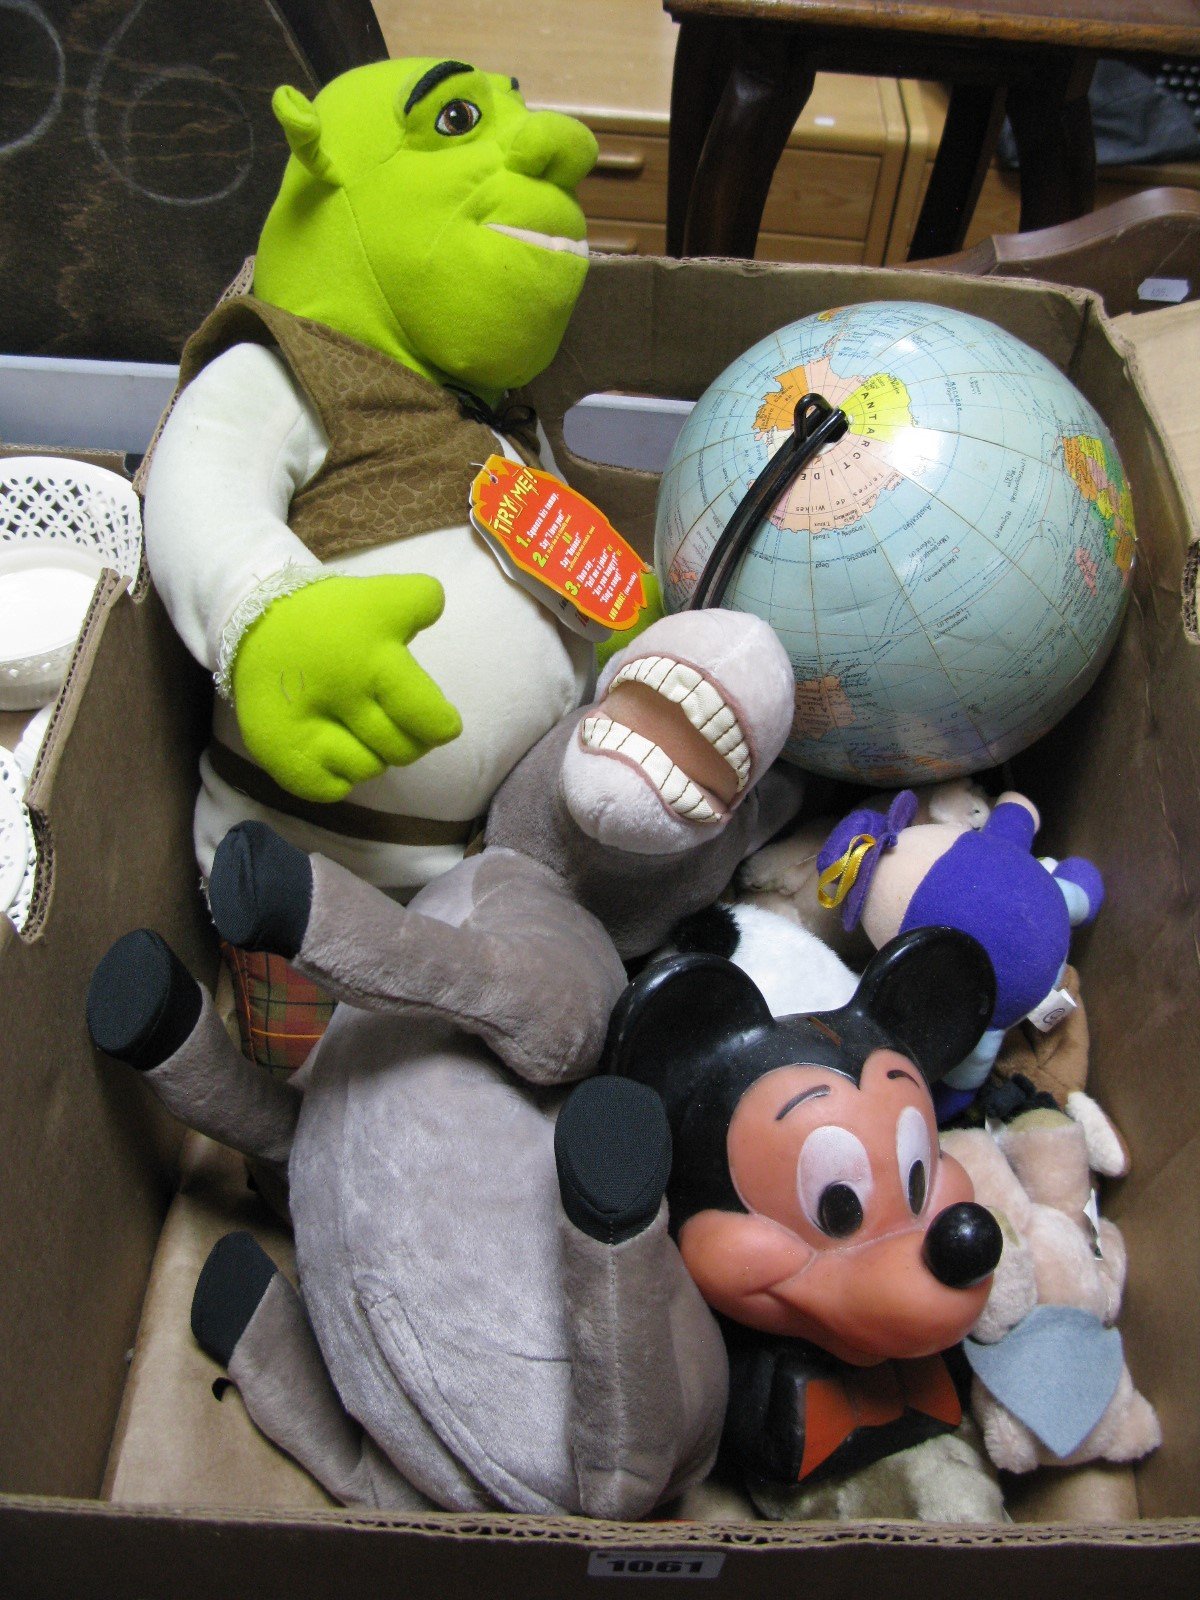 Lot 1061 - Girard et Barrere, terrestrial globe Mickey Mouse money box, Shreck toy, etc.